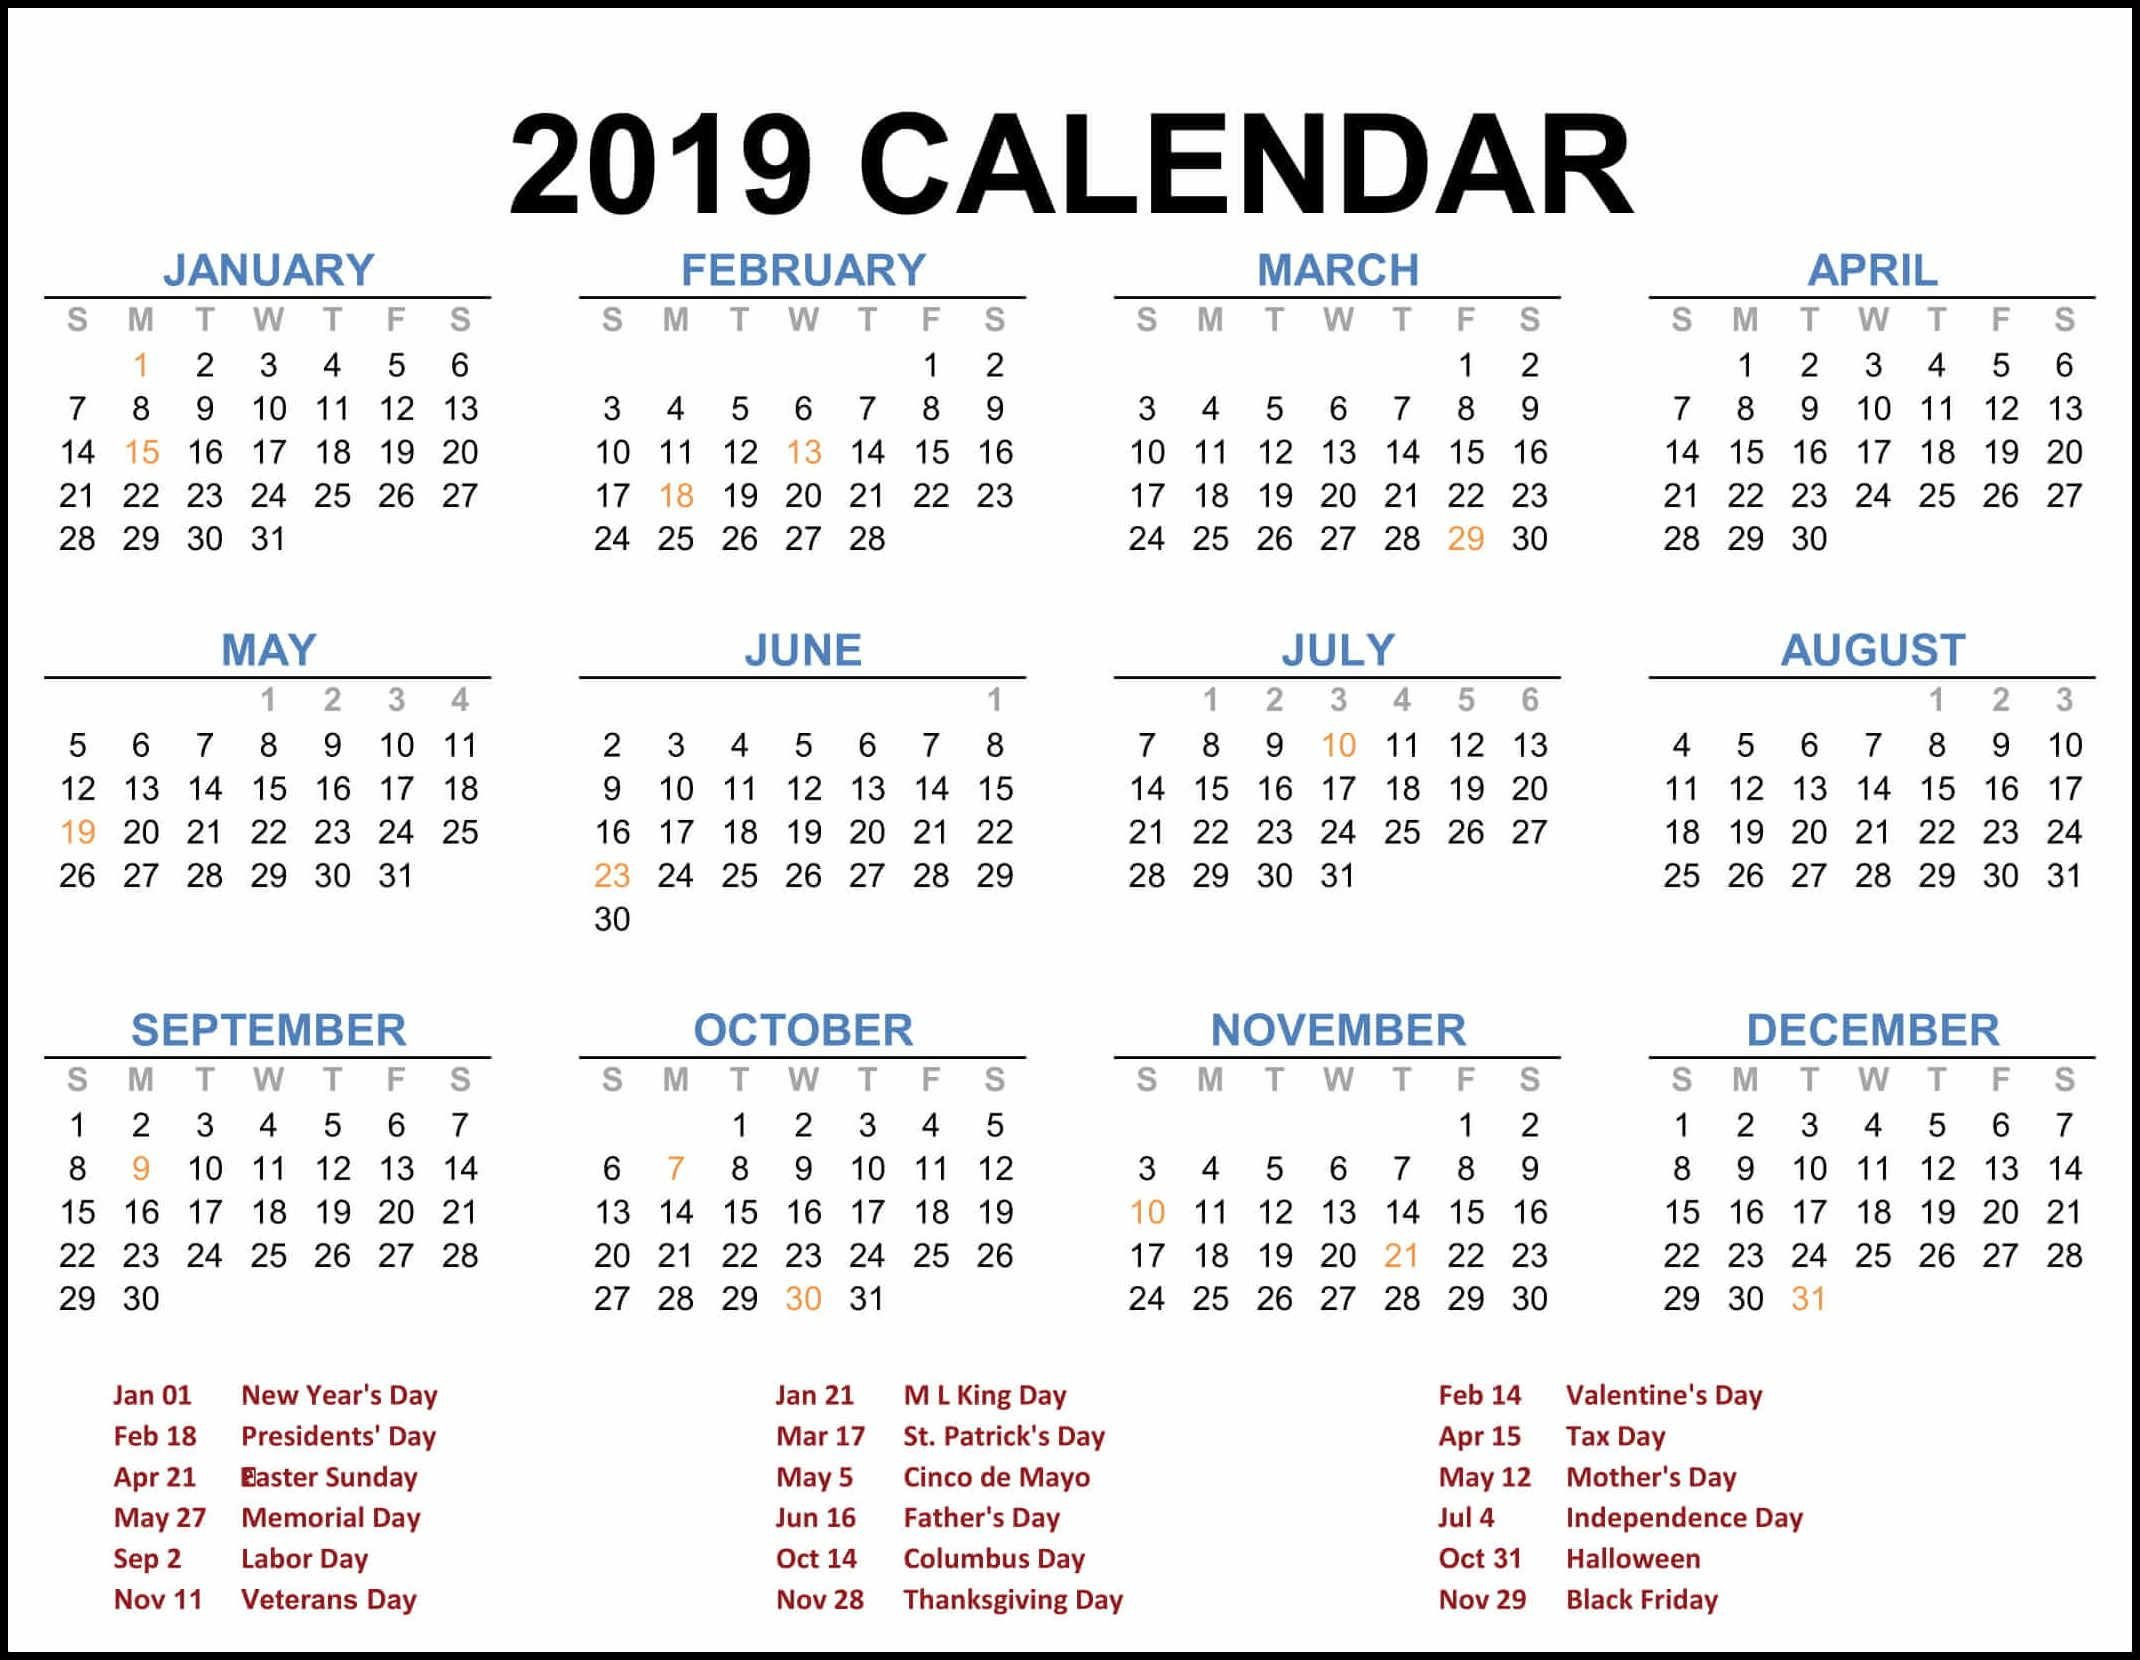 2019 Federal Holiday Calendar | 2019 Calendar Template In One Pages Calendar 2019 With Federal Holidays